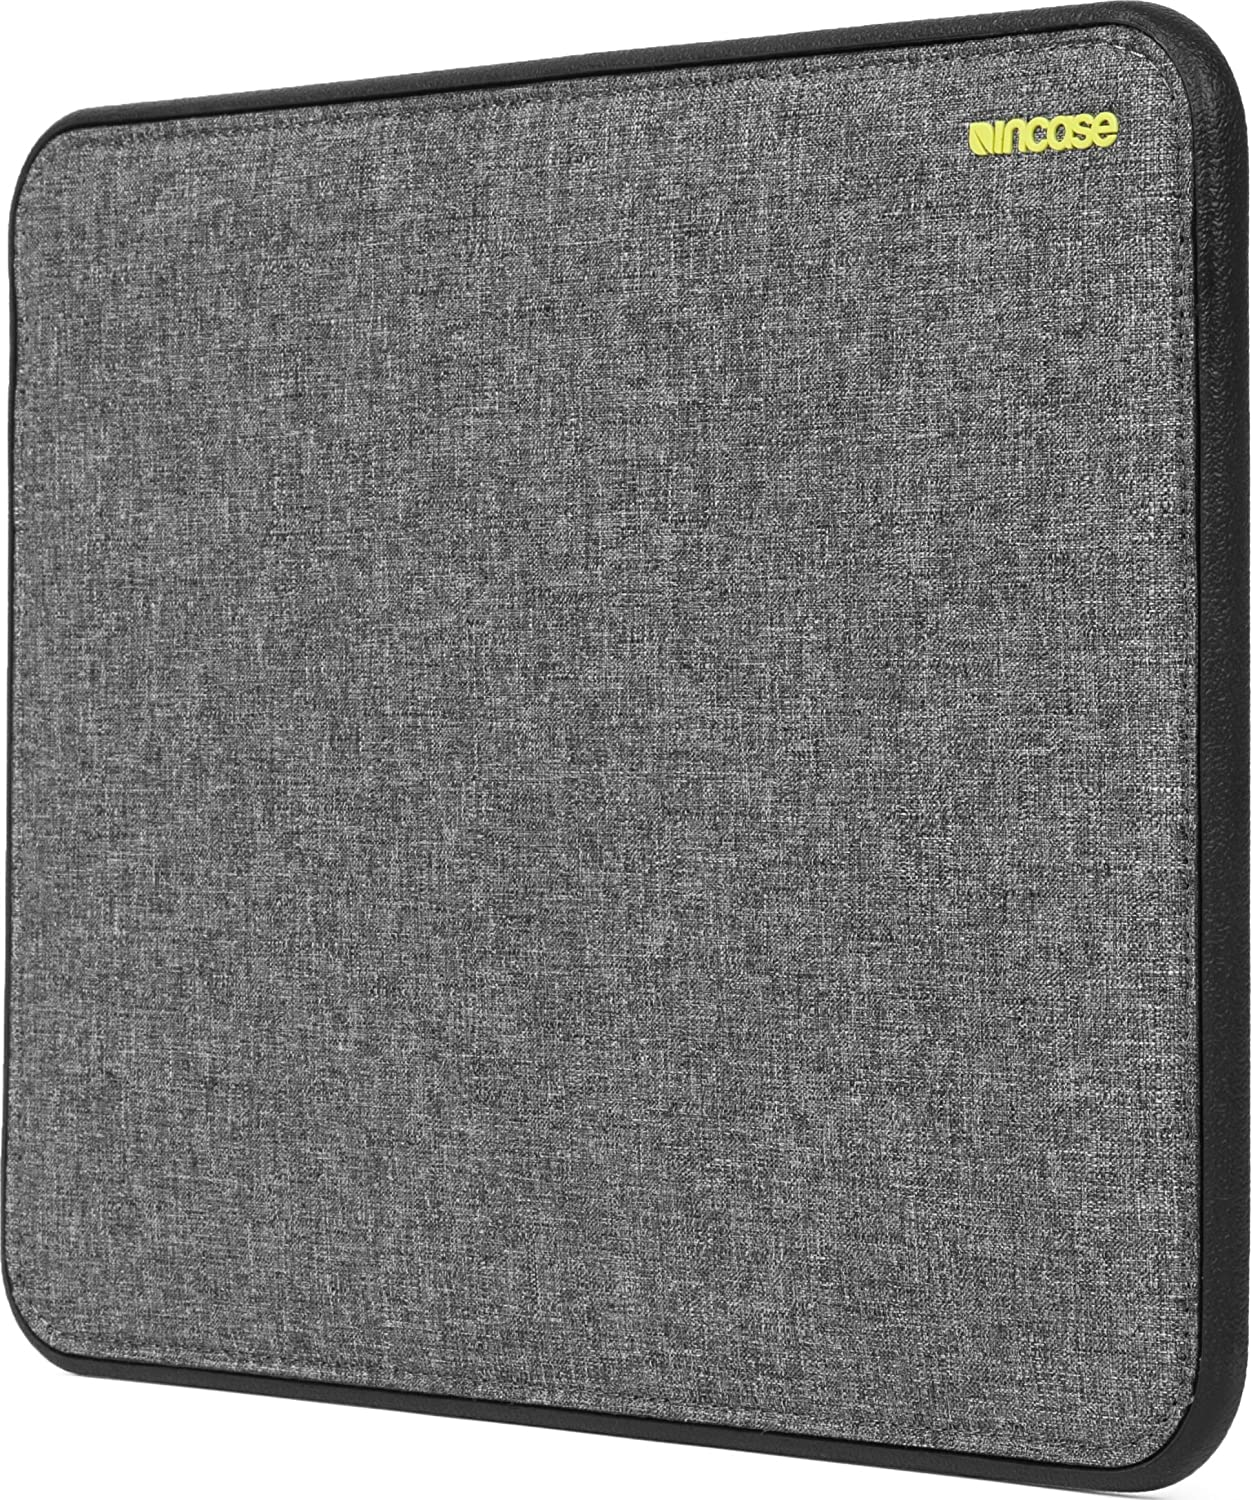 "Incase Icon Sleeve With Tensaerlite For 13"" Mac Book Air   Heather Gray/Black   Cl60646 by Incase Designs"